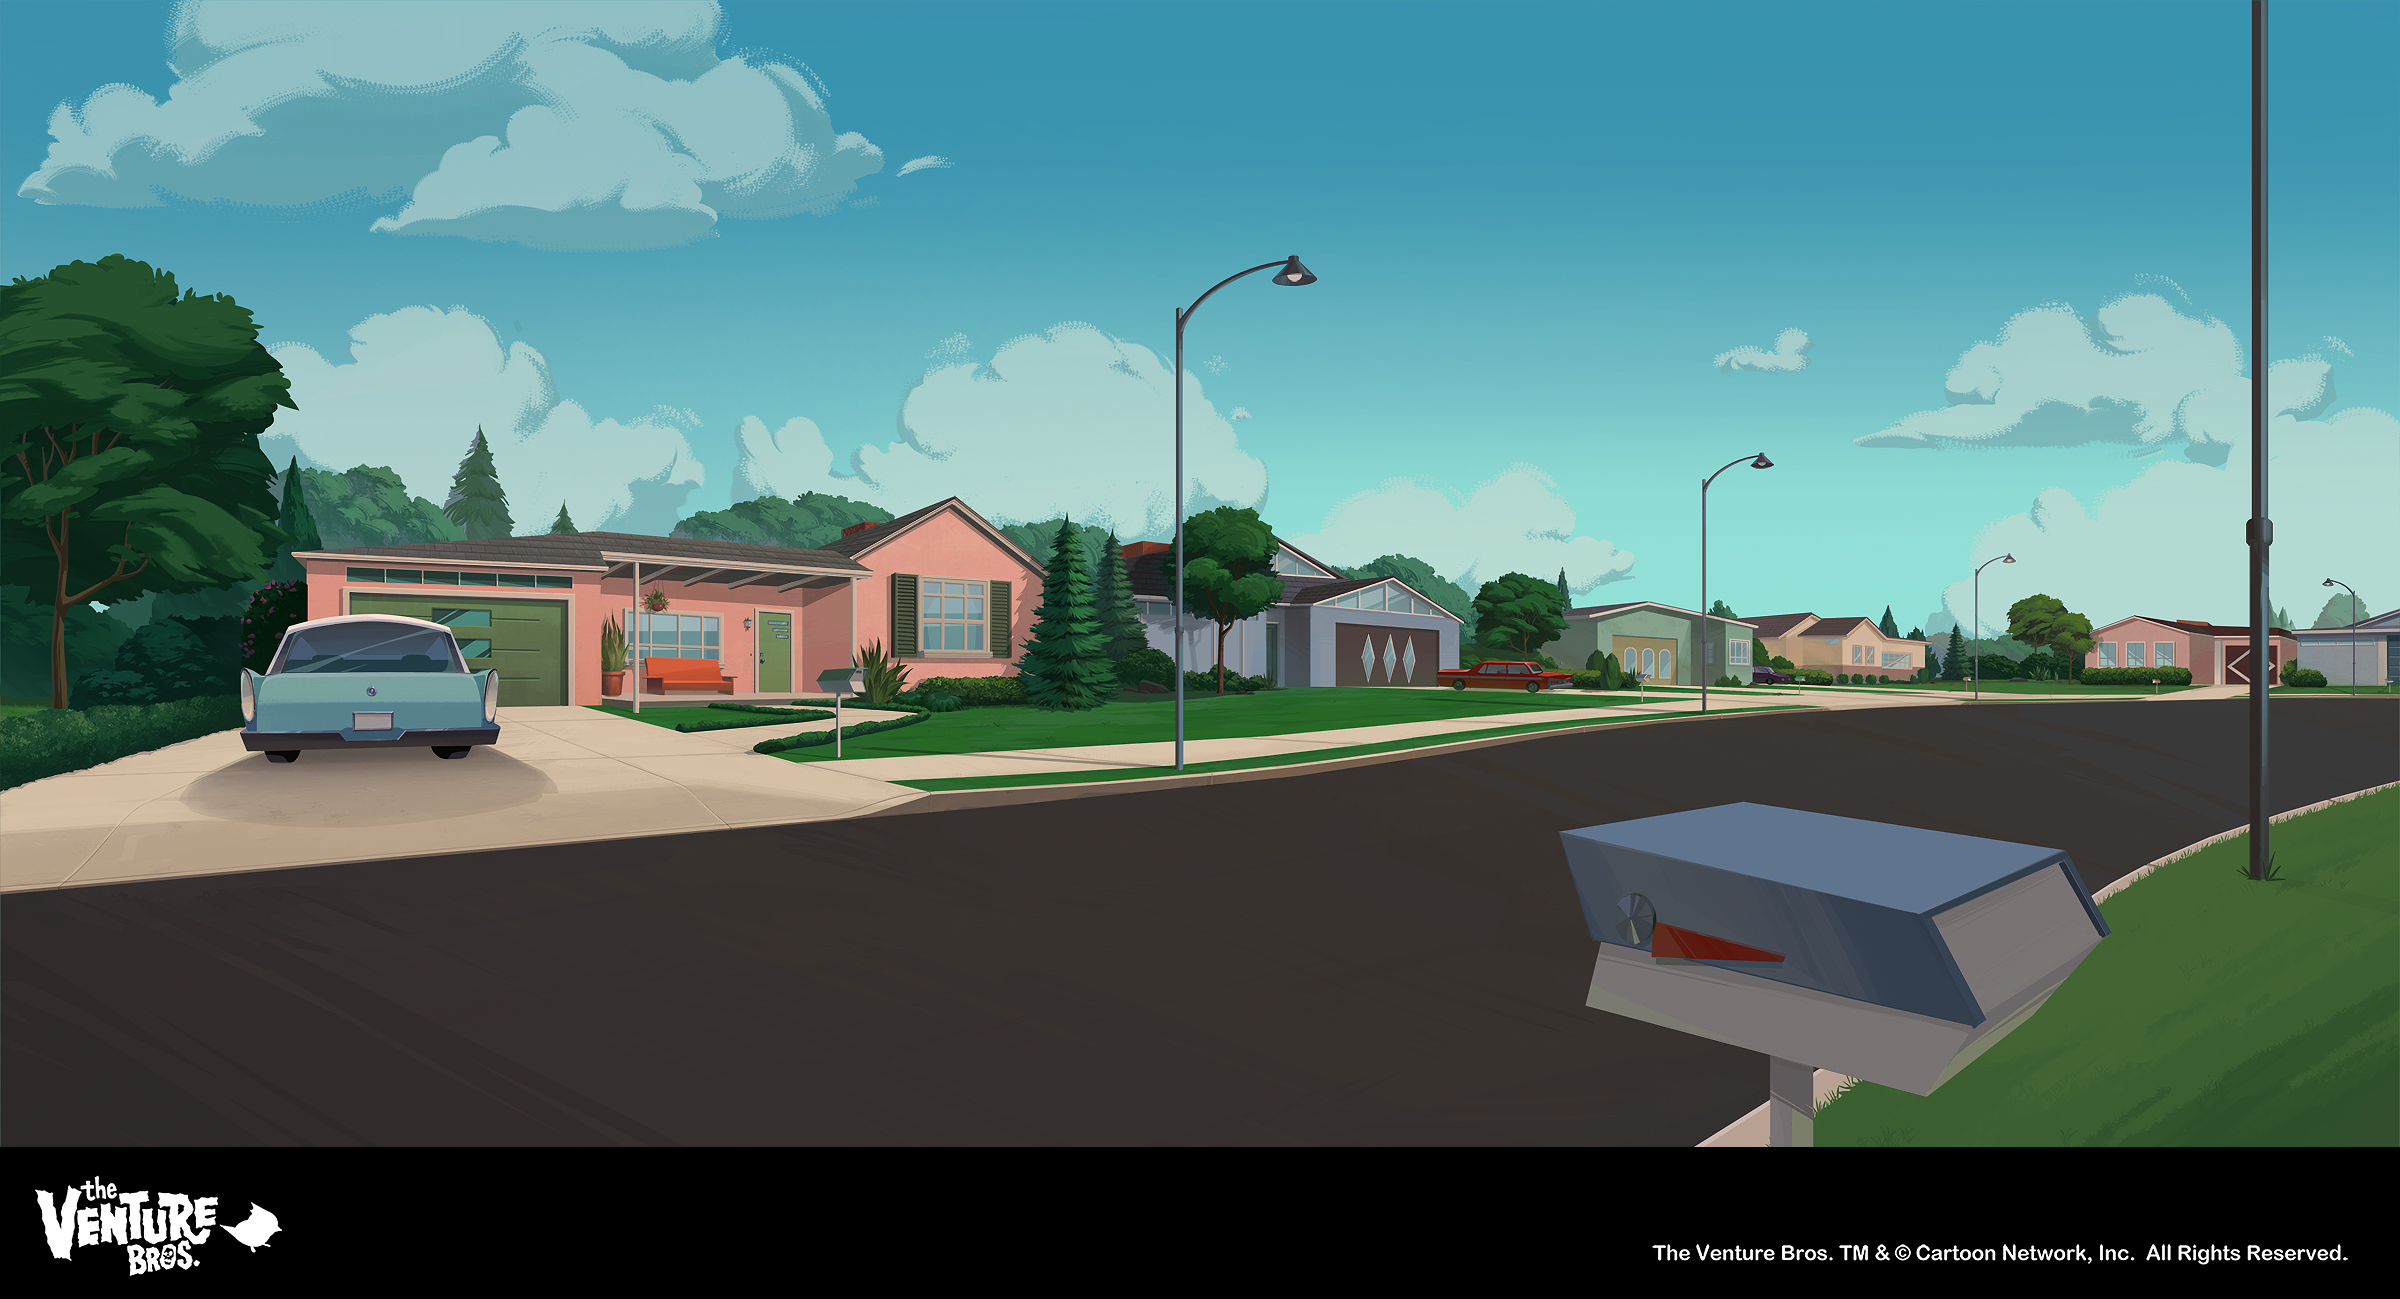 VB705_BG_ext_1960_neighborhood_v01_AJ.png